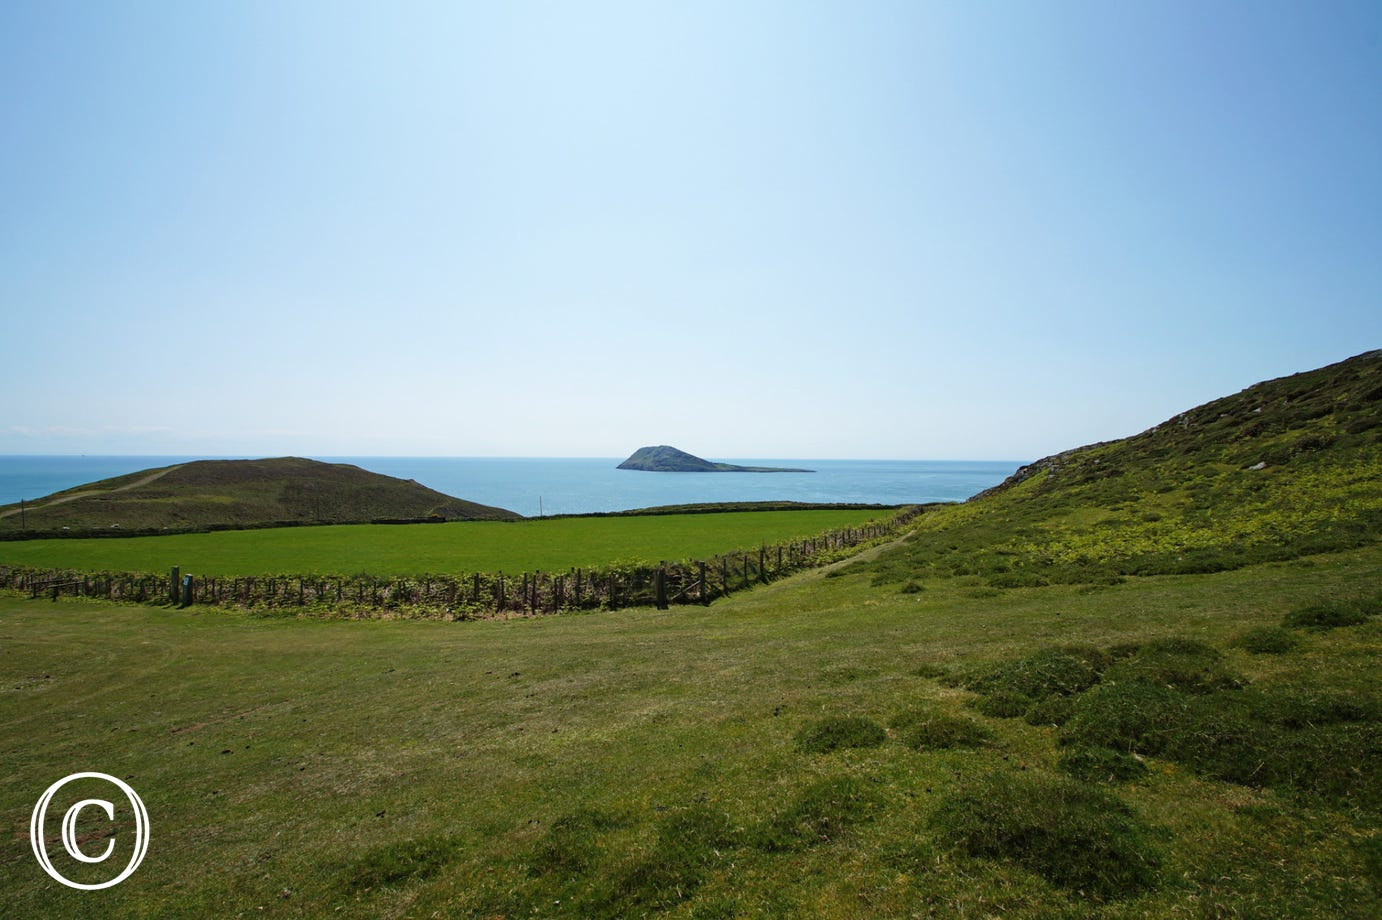 Why not catch a boat over to Ynys Enlli (Bardsey Island) for an inspiring day out